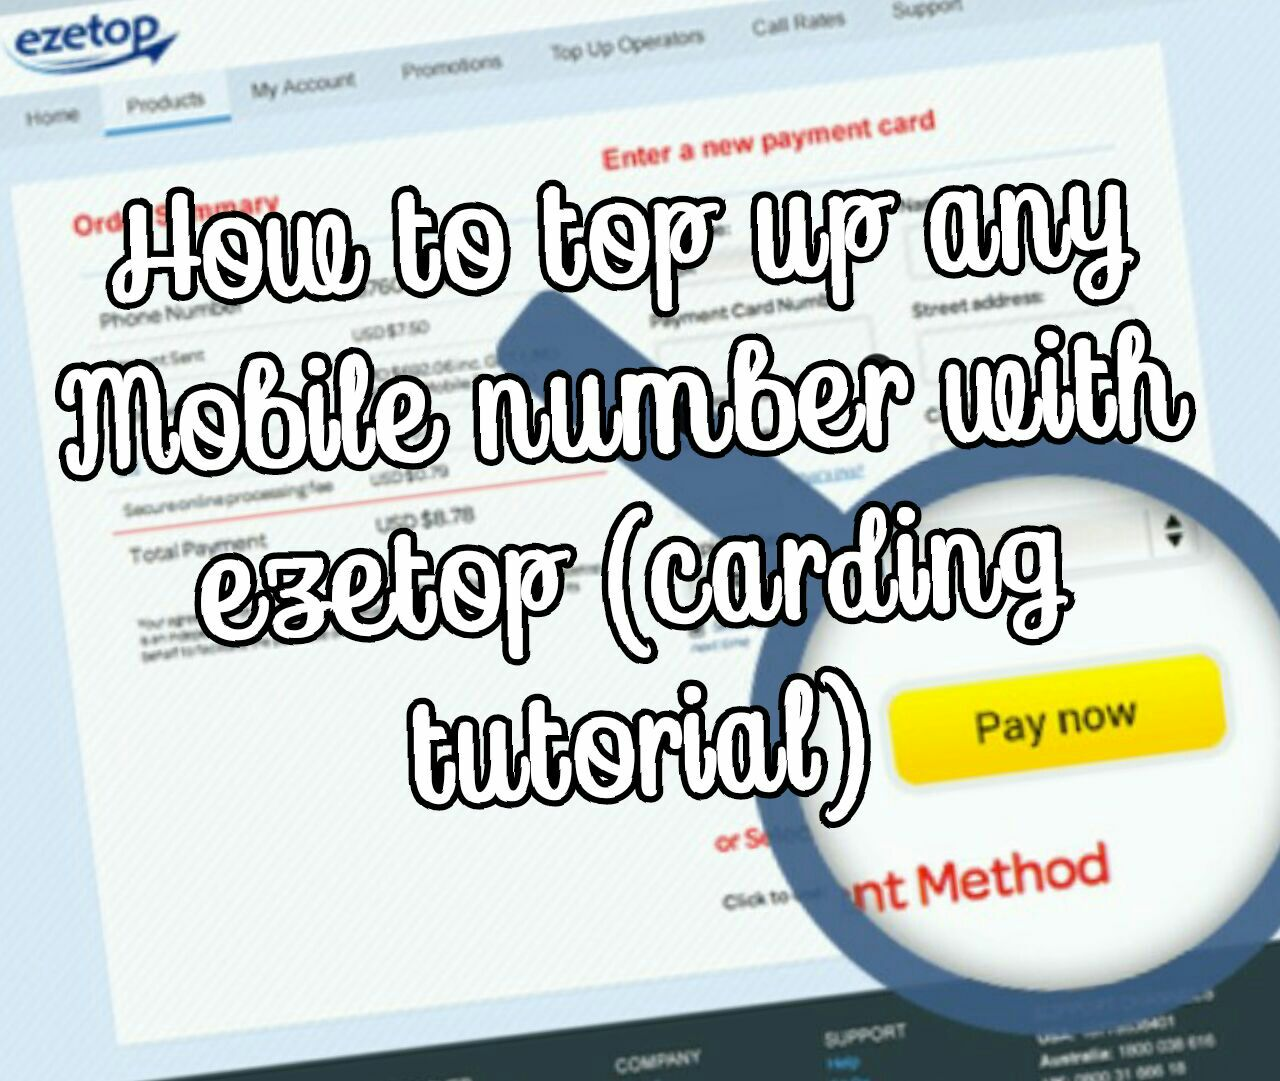 How to top up any Mobile Number Worldwide With Ezetop